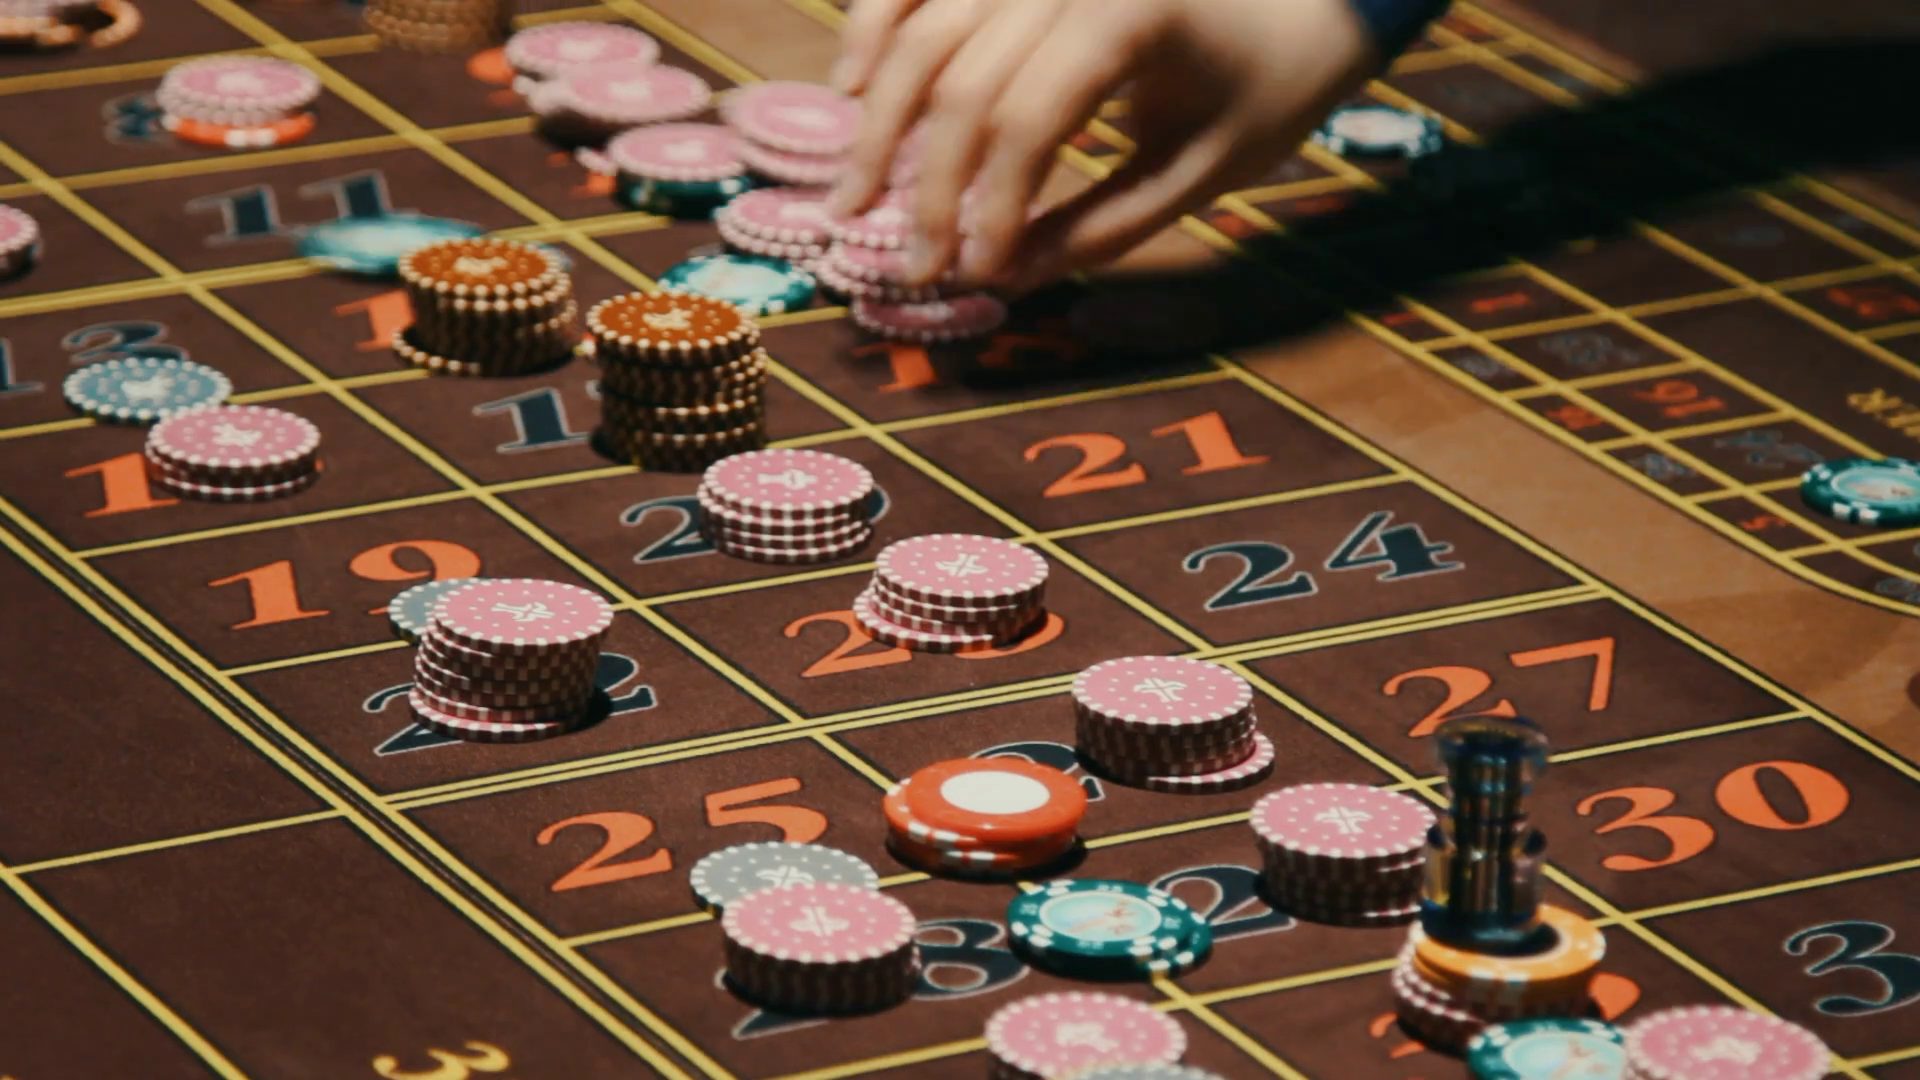 Croupier Hands Removing Casino Chips From Gambling Table Casino Roulette Table With Classic Betting Grid Close Up Casino Dealer Hands Clean Up Table From Game Bets Gambling Game In Casino Stock Video